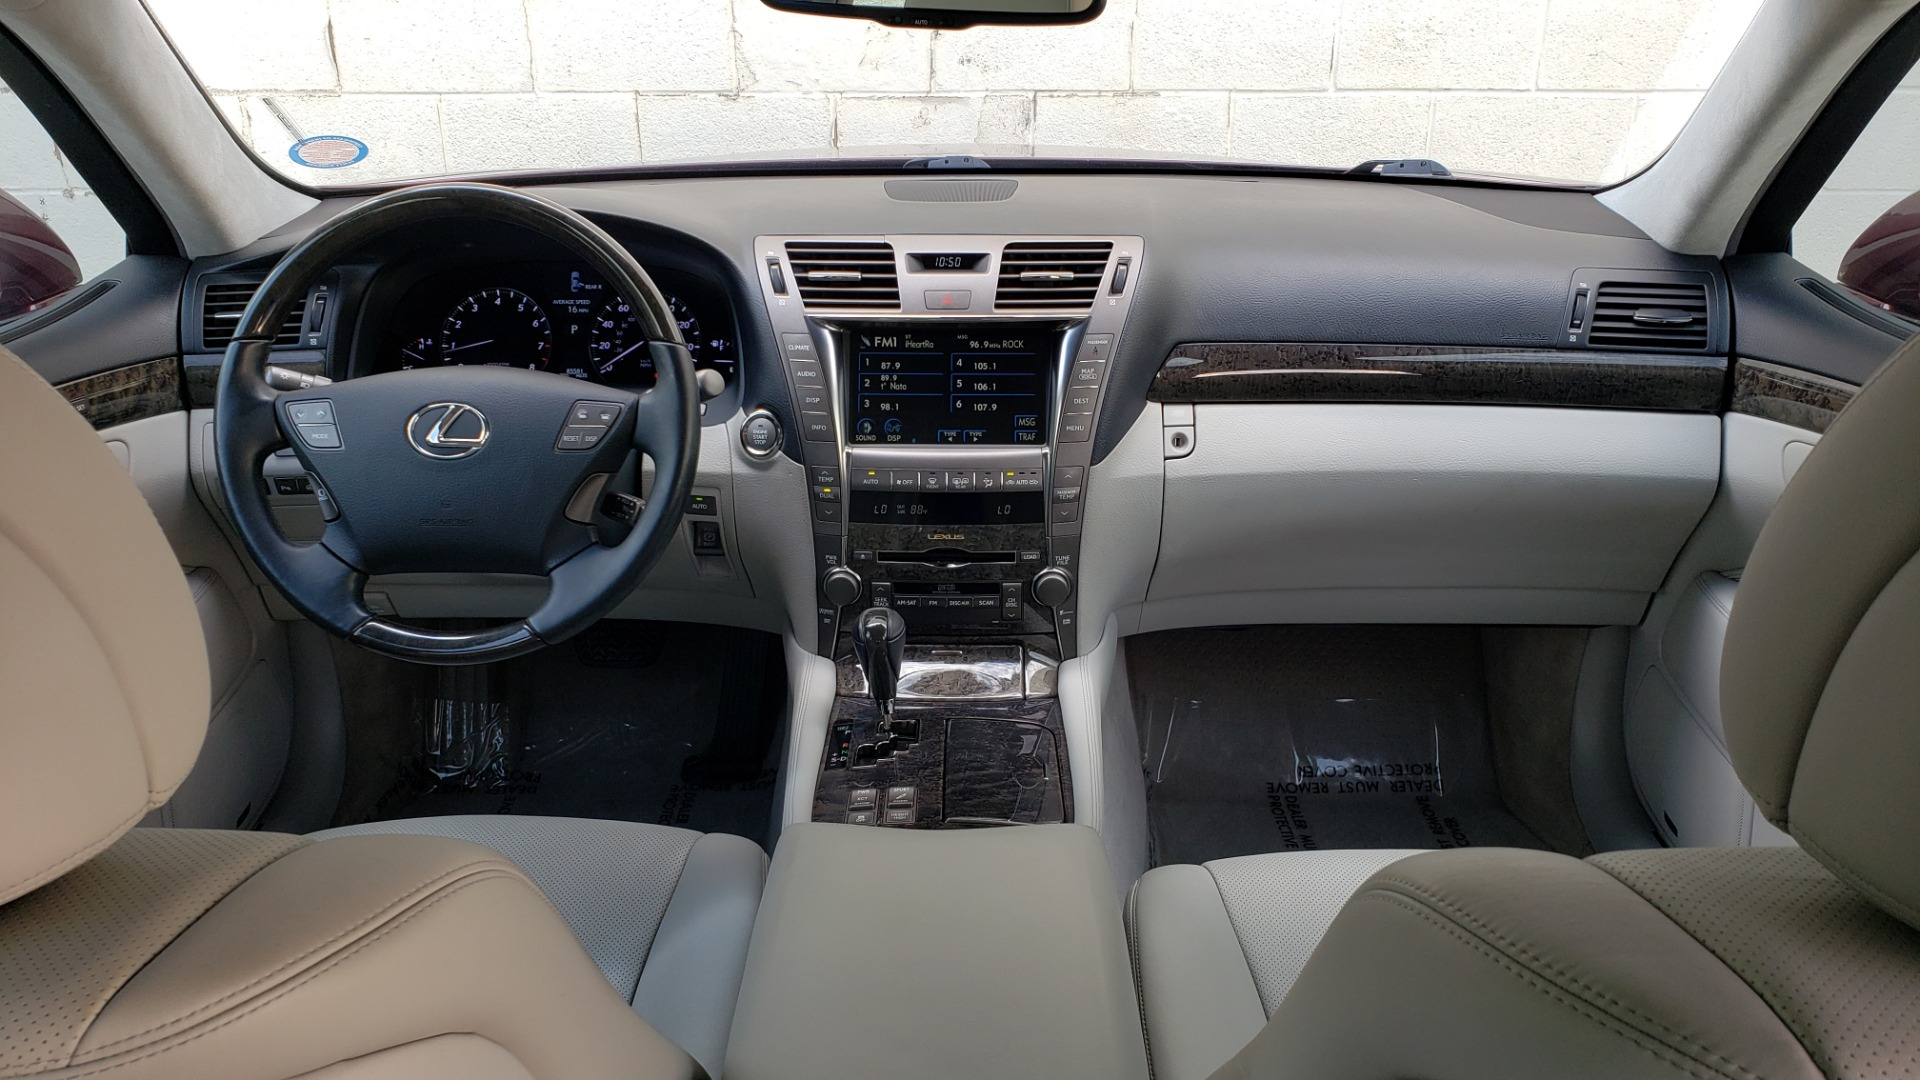 Used 2007 Lexus LS 460 LWB / LUX / NAV / SUNROOF / MARK LEVINSON SND / AIR SUSP for sale Sold at Formula Imports in Charlotte NC 28227 80